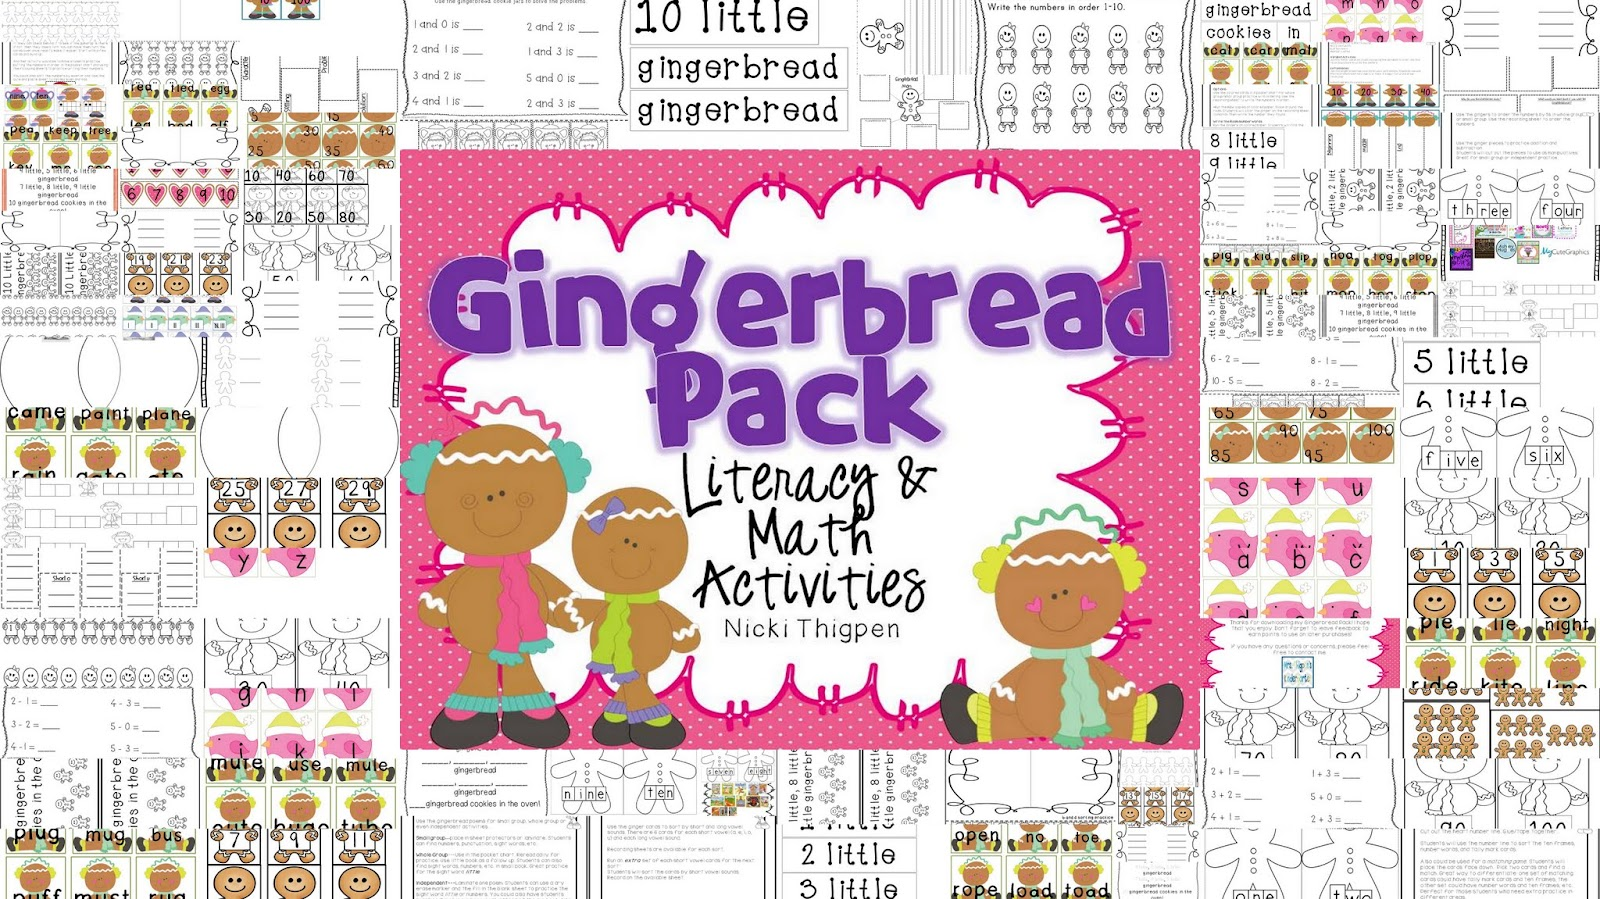 http://www.teachersnotebook.com/product/nickit/gingerbread-fun-pack